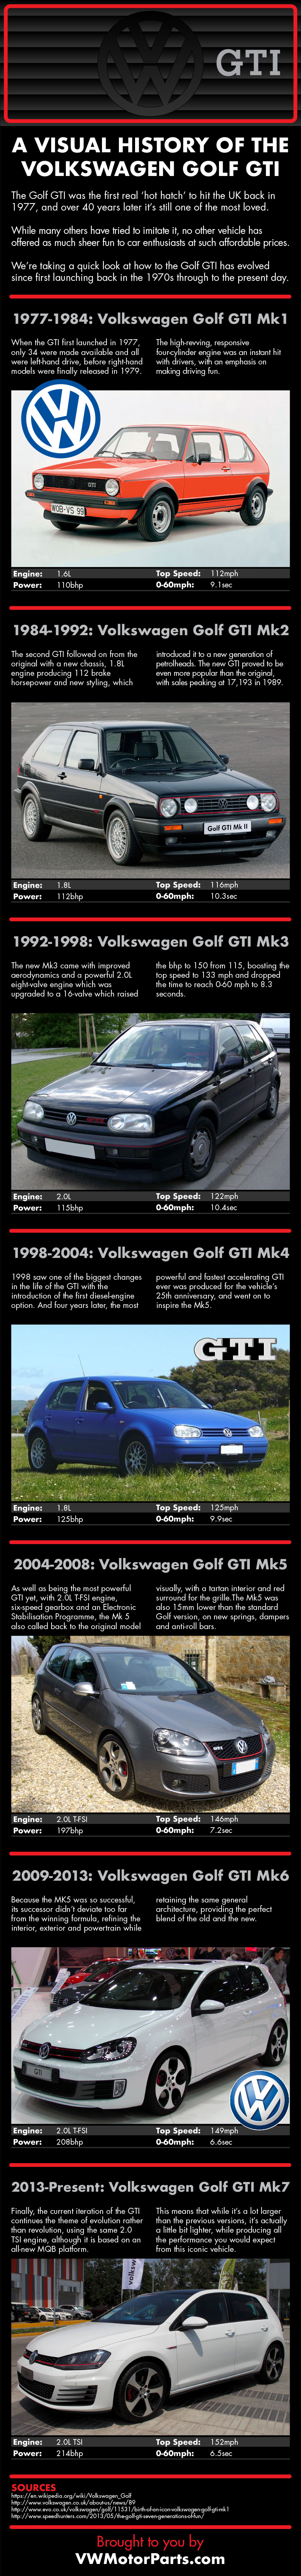 A Visual History of the Volkswagen Golf GTI